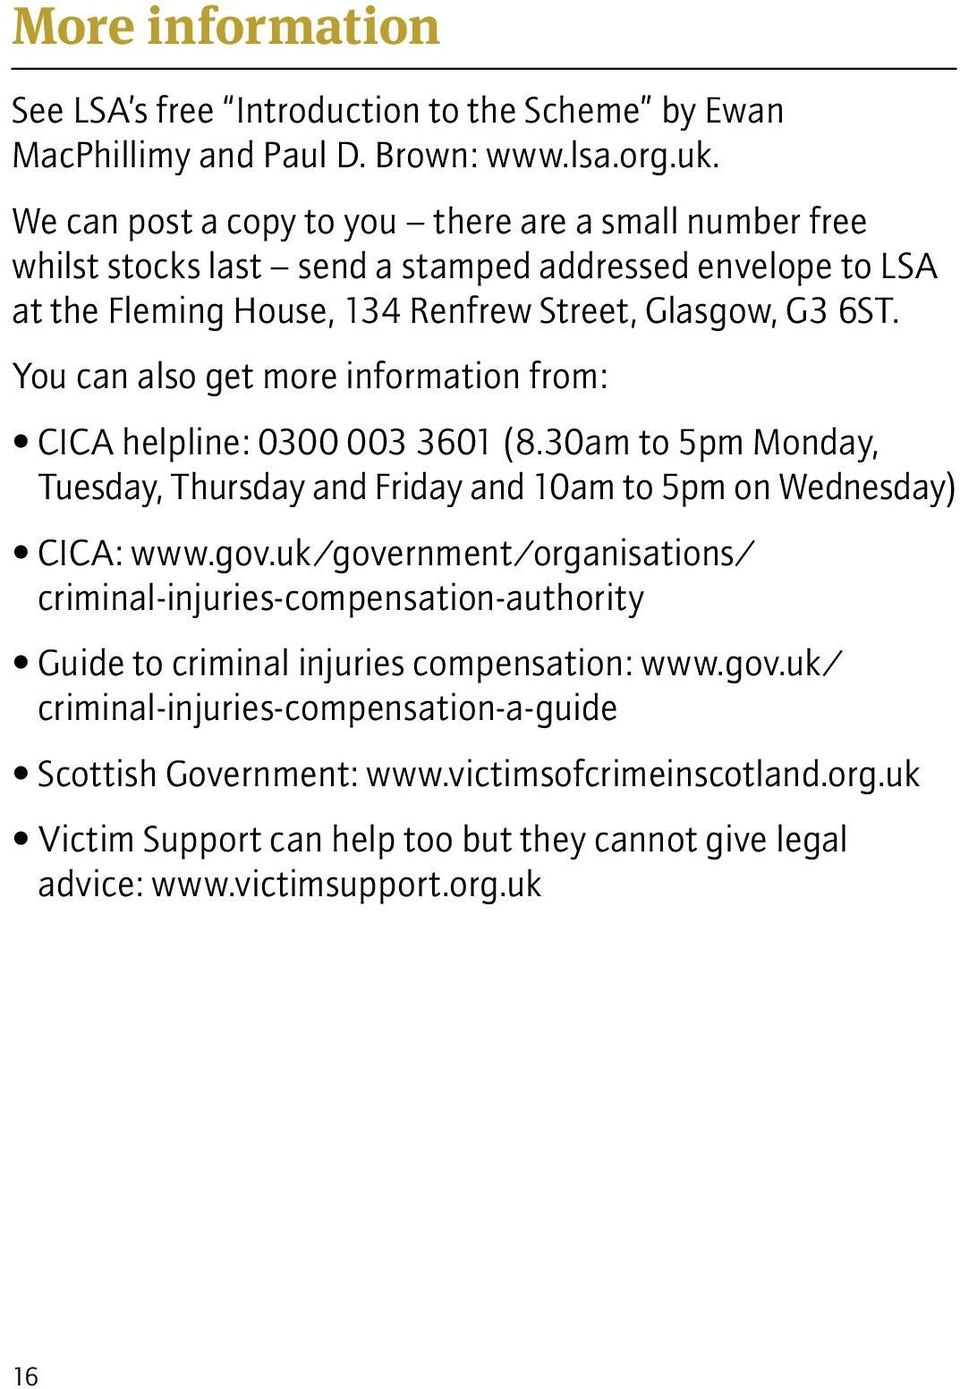 You can also get more information from: CICA helpline: 0300 003 3601 (8.30am to 5pm Monday, Tuesday, Thursday and Friday and 10am to 5pm on Wednesday) CICA: www.gov.